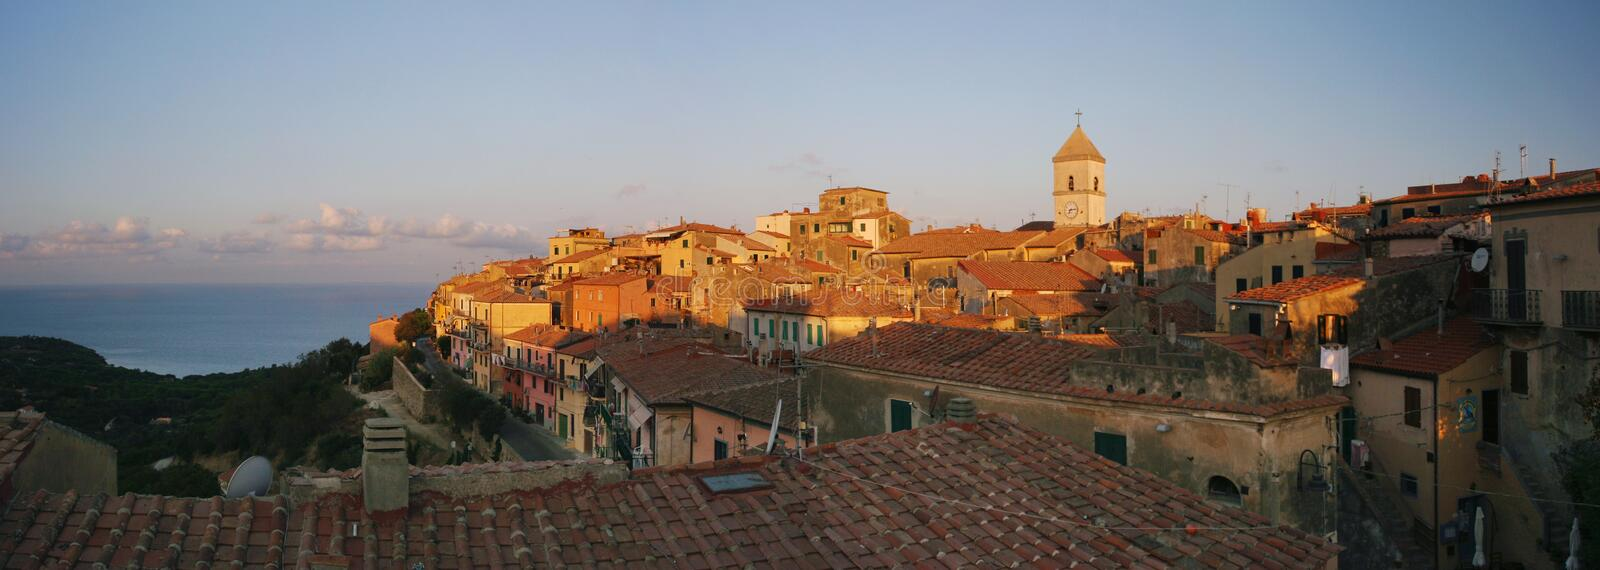 Capoliveri panorama of old city stock image